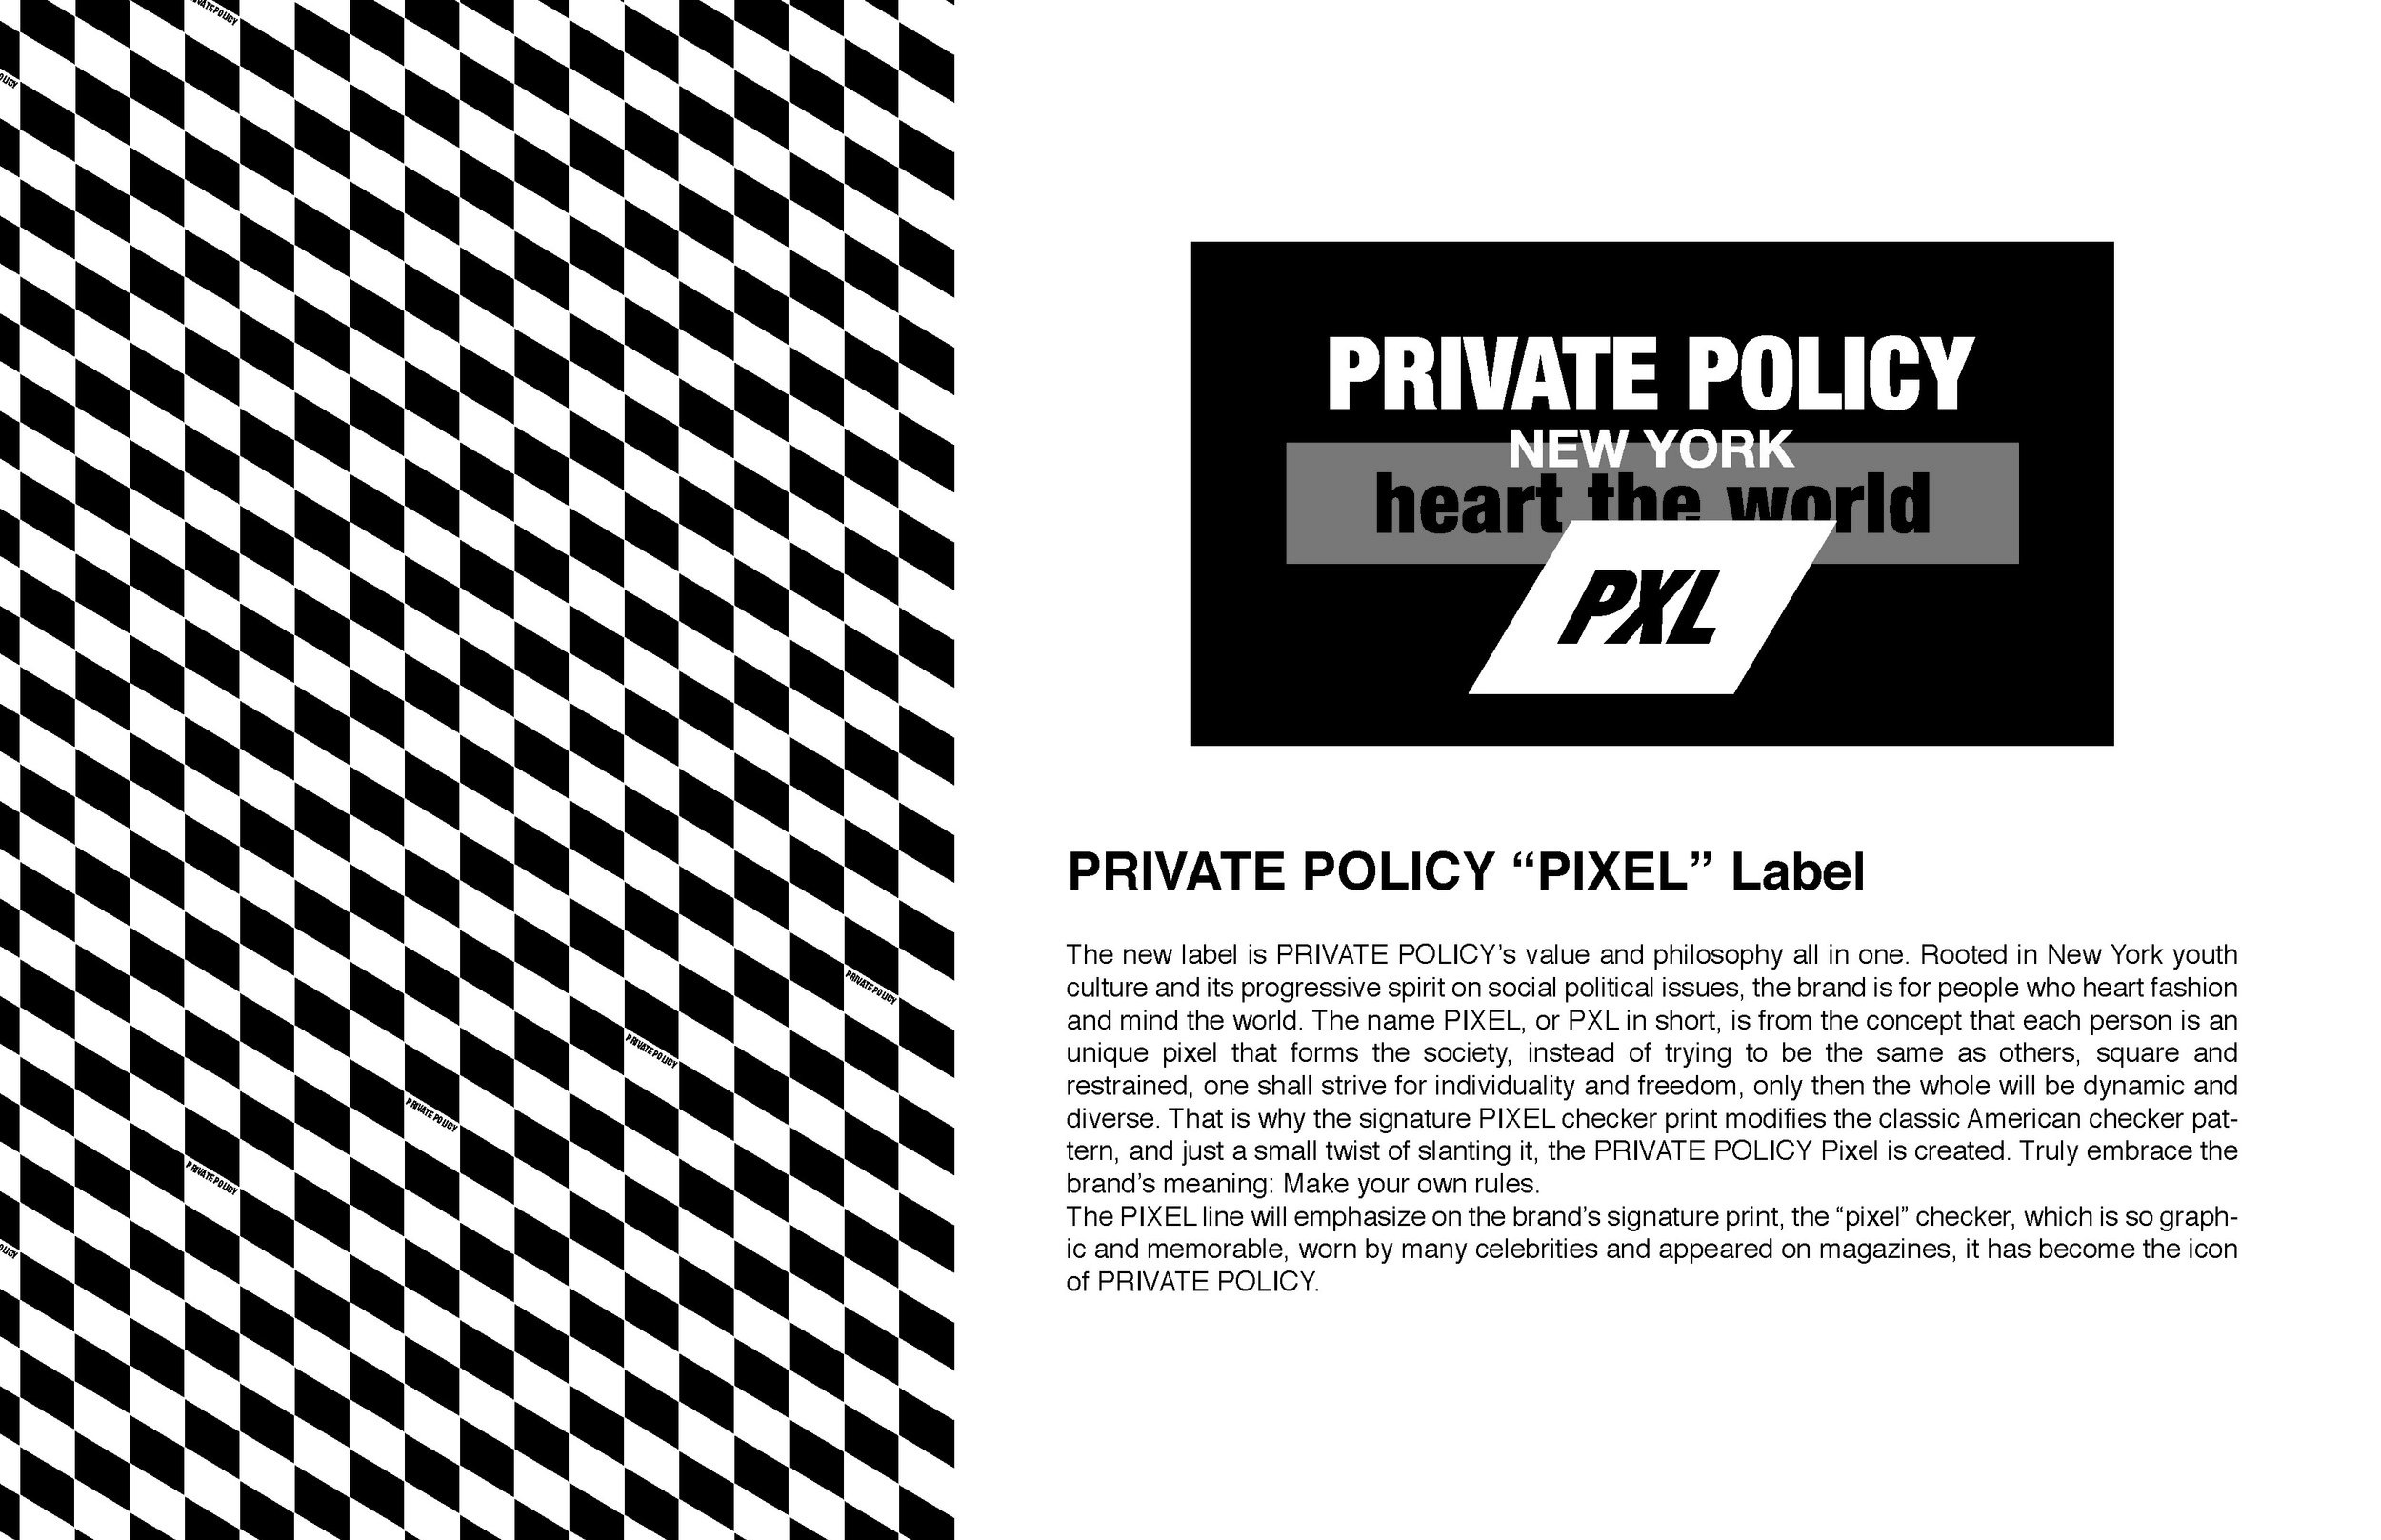 PRIVATE POLICY PXL Pixel Label